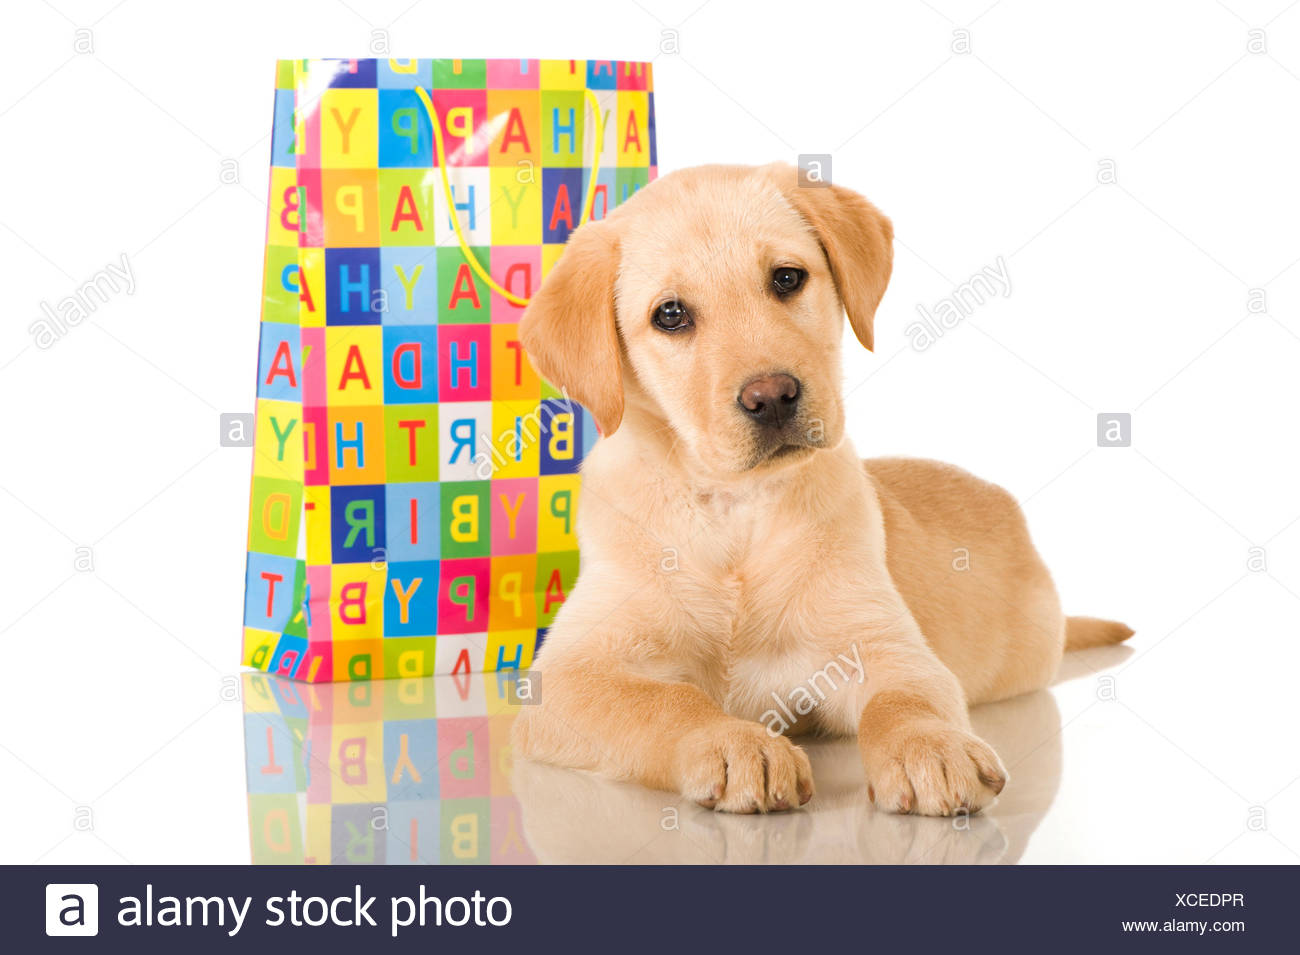 Labrador Retriever Yellow puppy lying next to colourful paper carrier bag imprint Happy Birthday - Stock Image